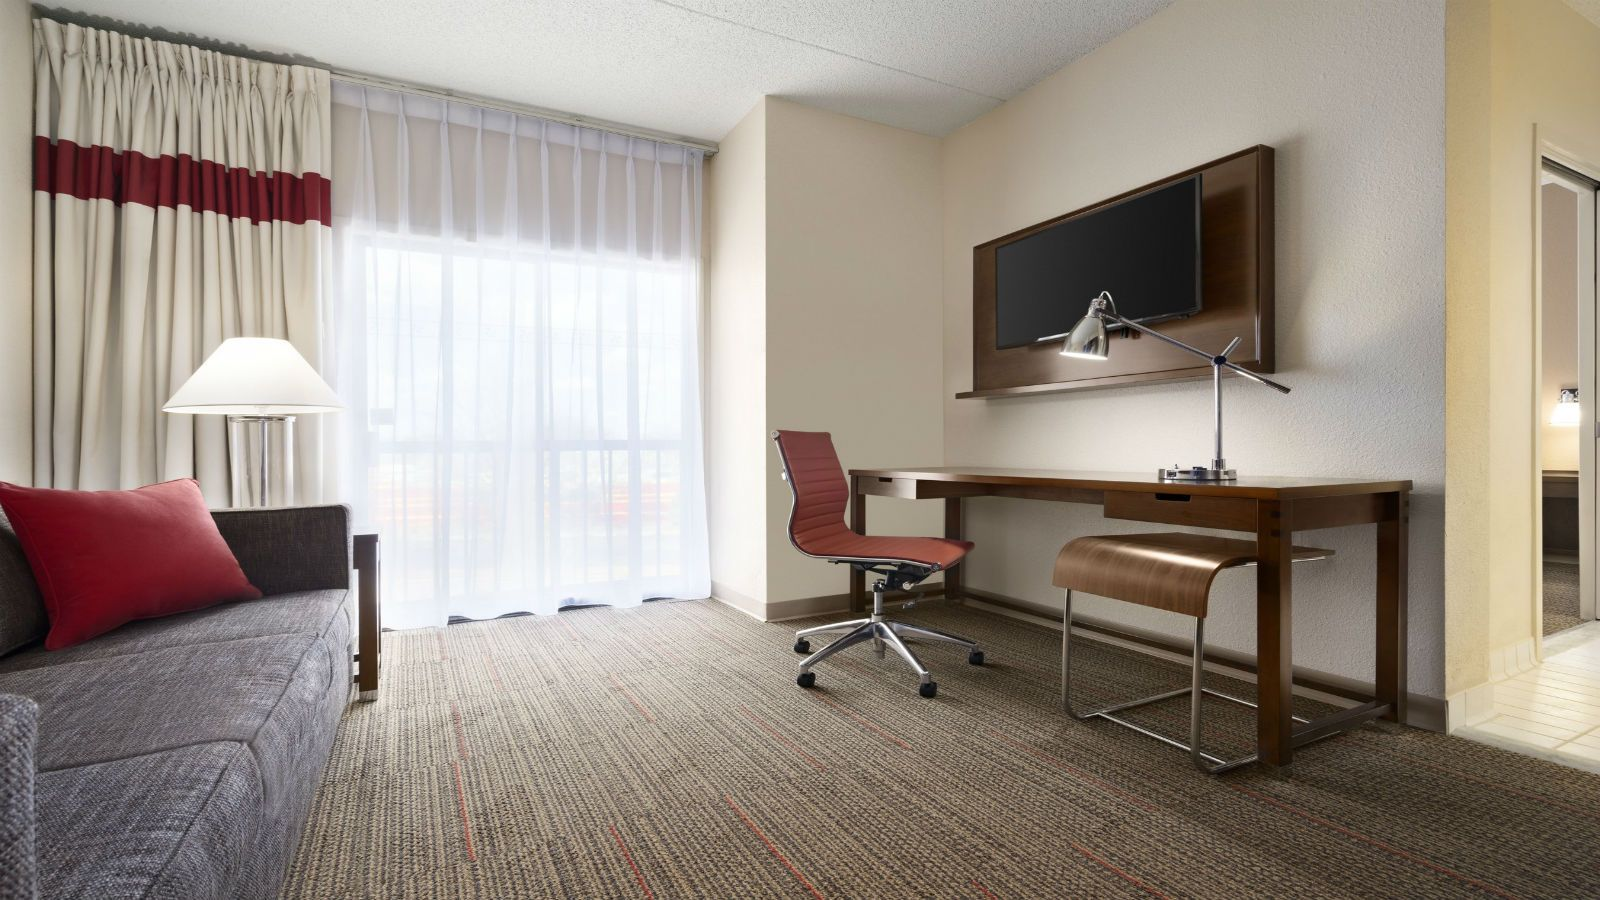 North Raleigh Accommodations - Accessible Suite